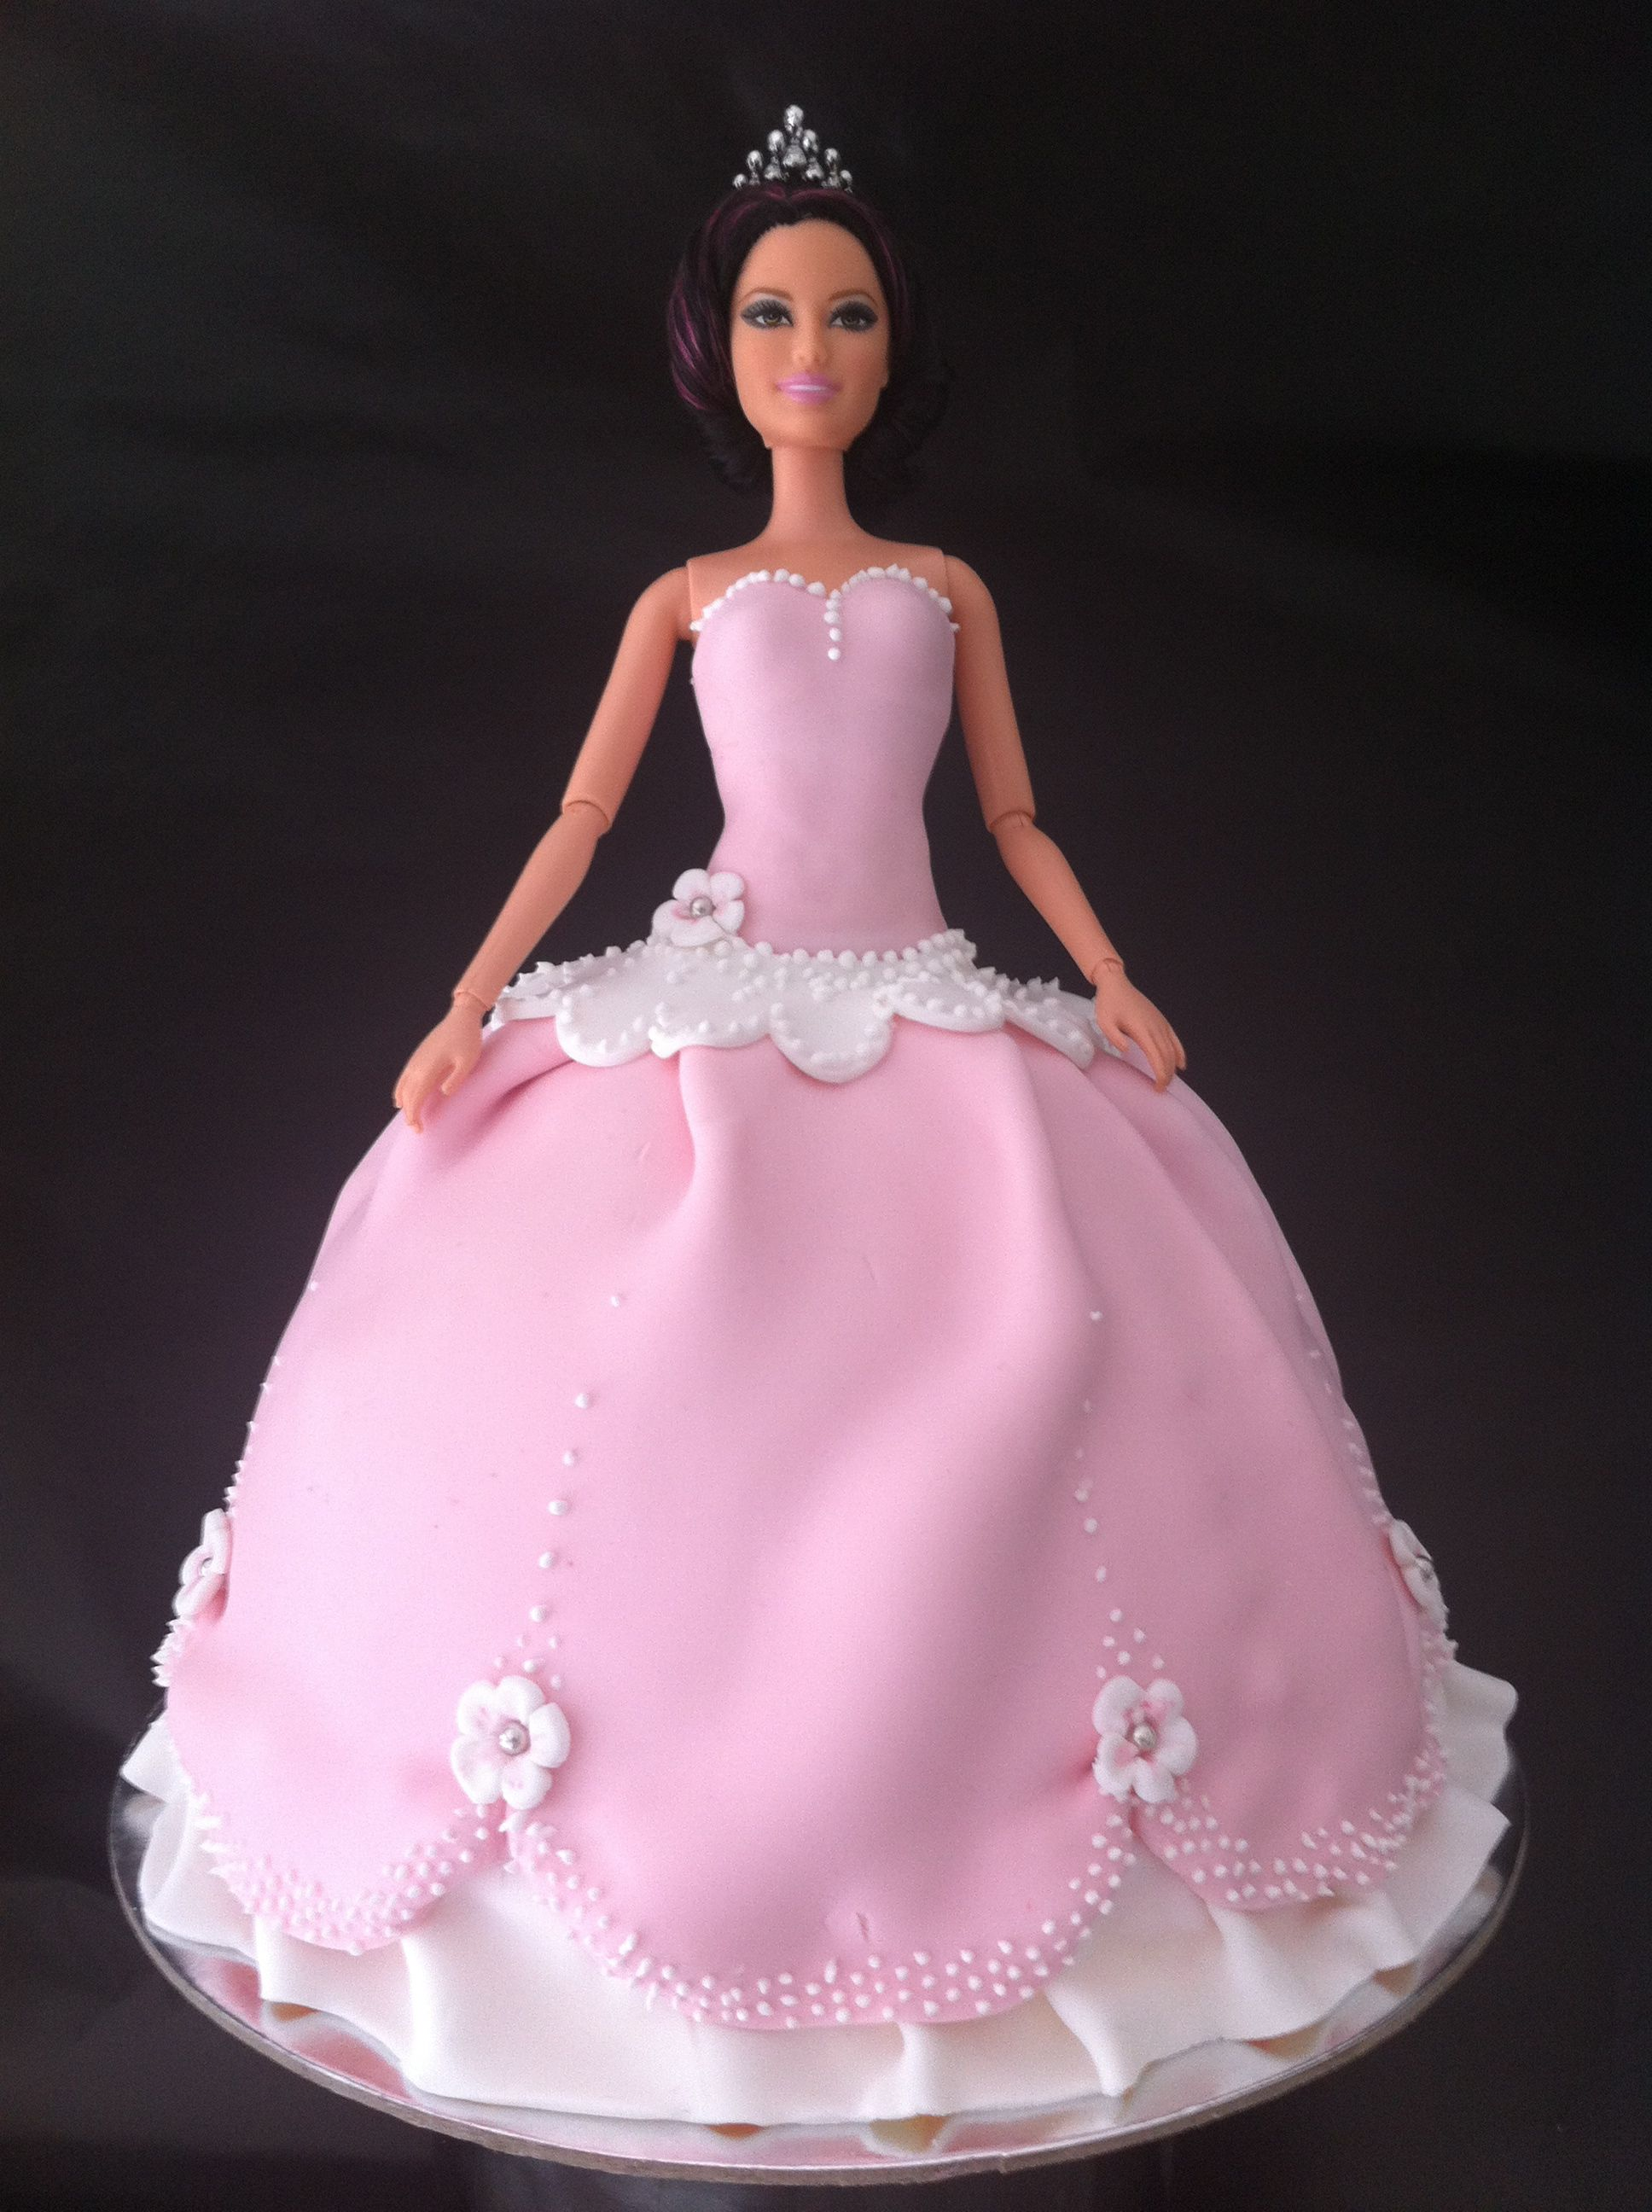 doll cakes for girls | Princess Cake Using Fondant | HowToCookThat ...